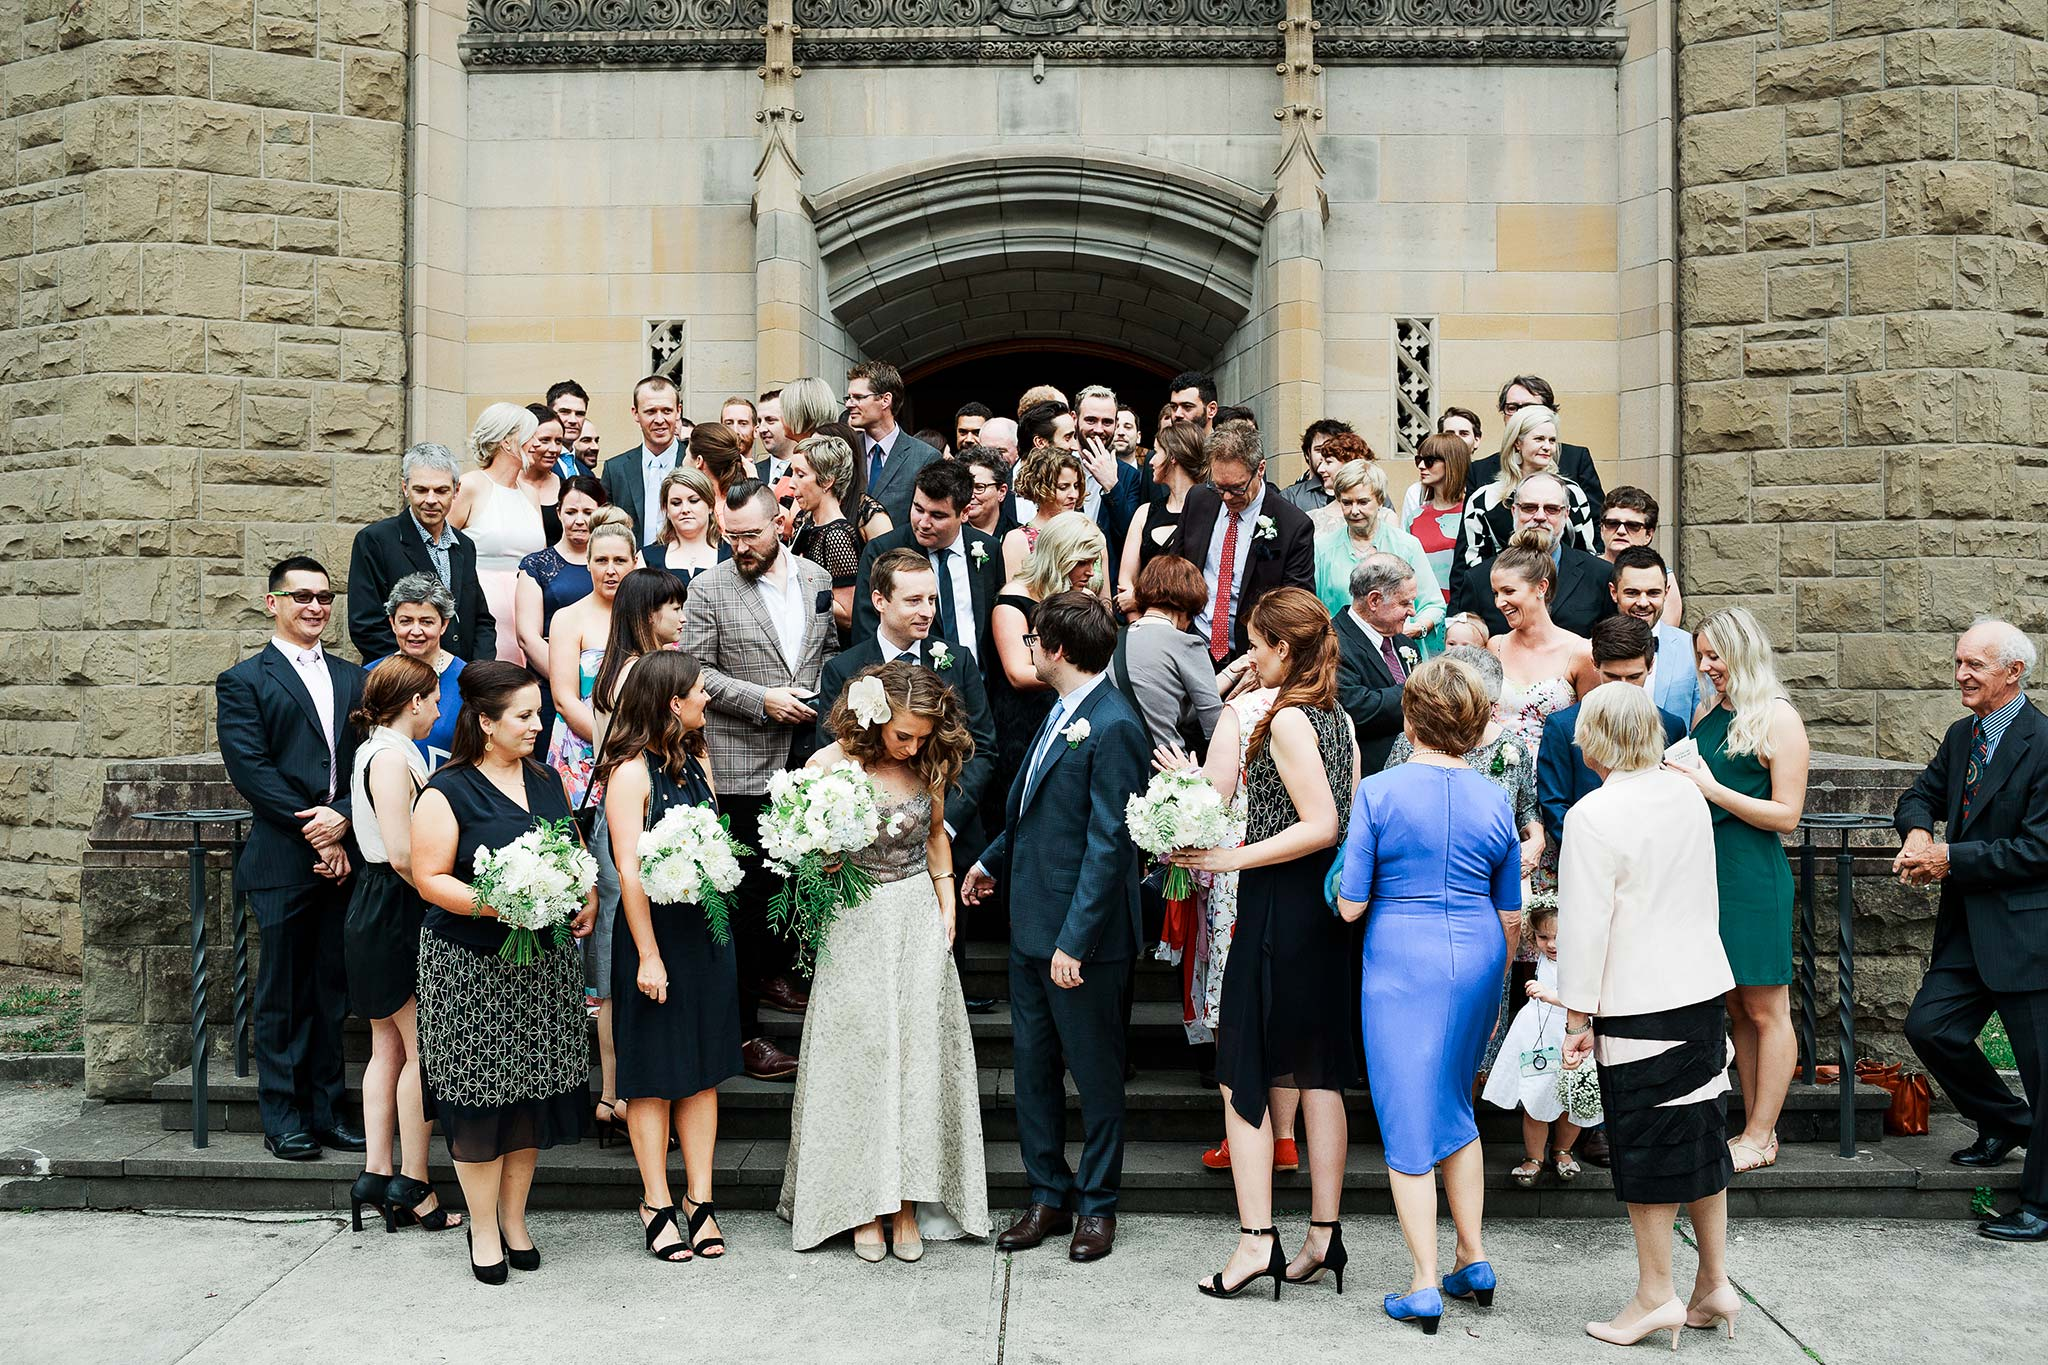 Newman-college-wedding-photographer-ceremony-group-photo